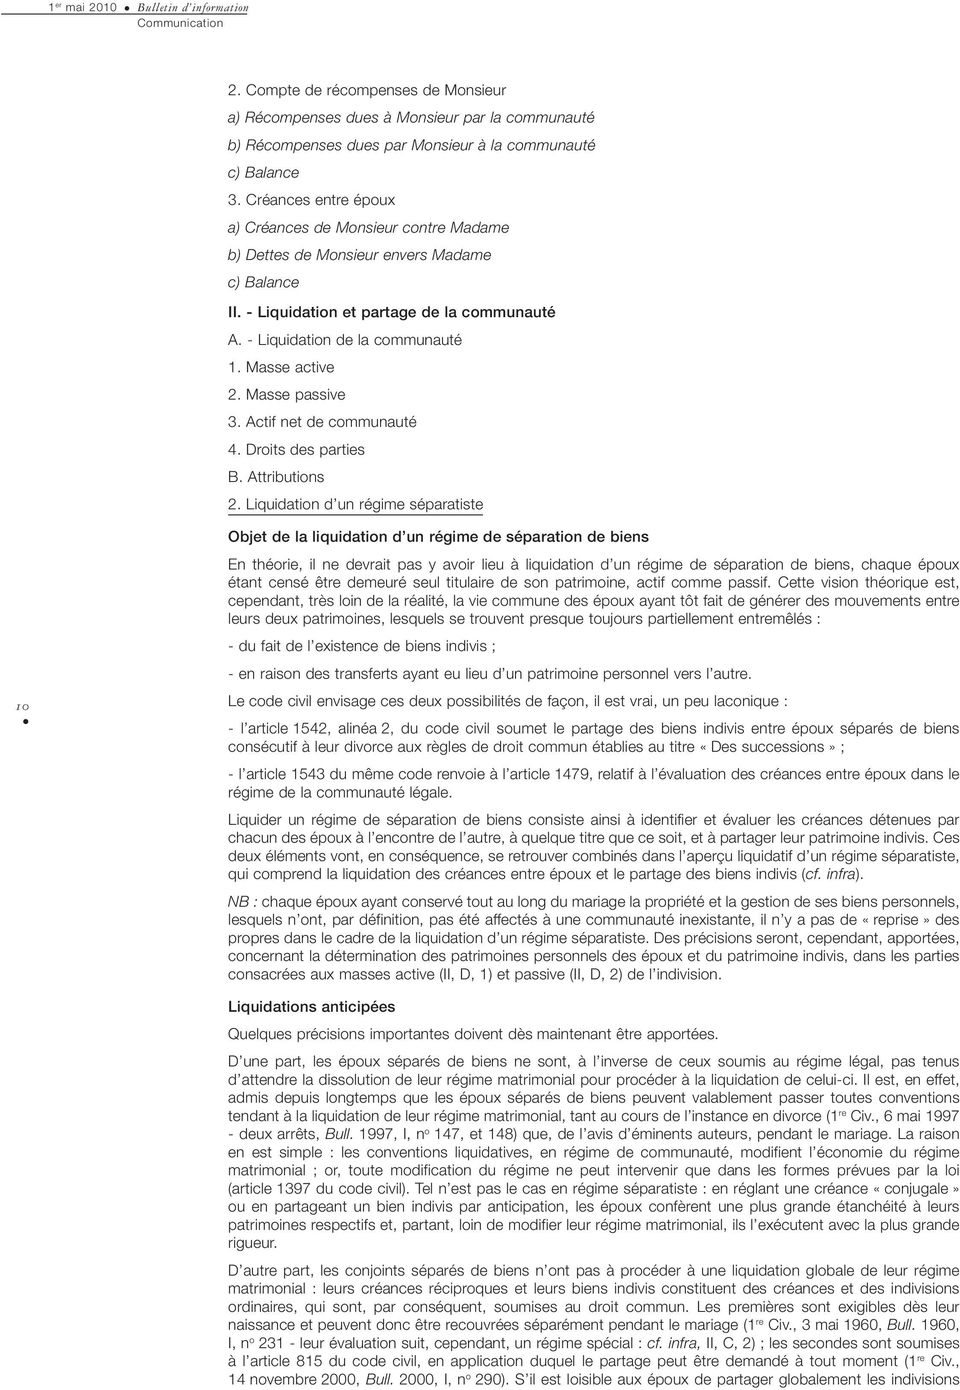 Masse active 2. Masse passive 3. Actif net de communauté 4. Droits des parties B. Attributions 2.